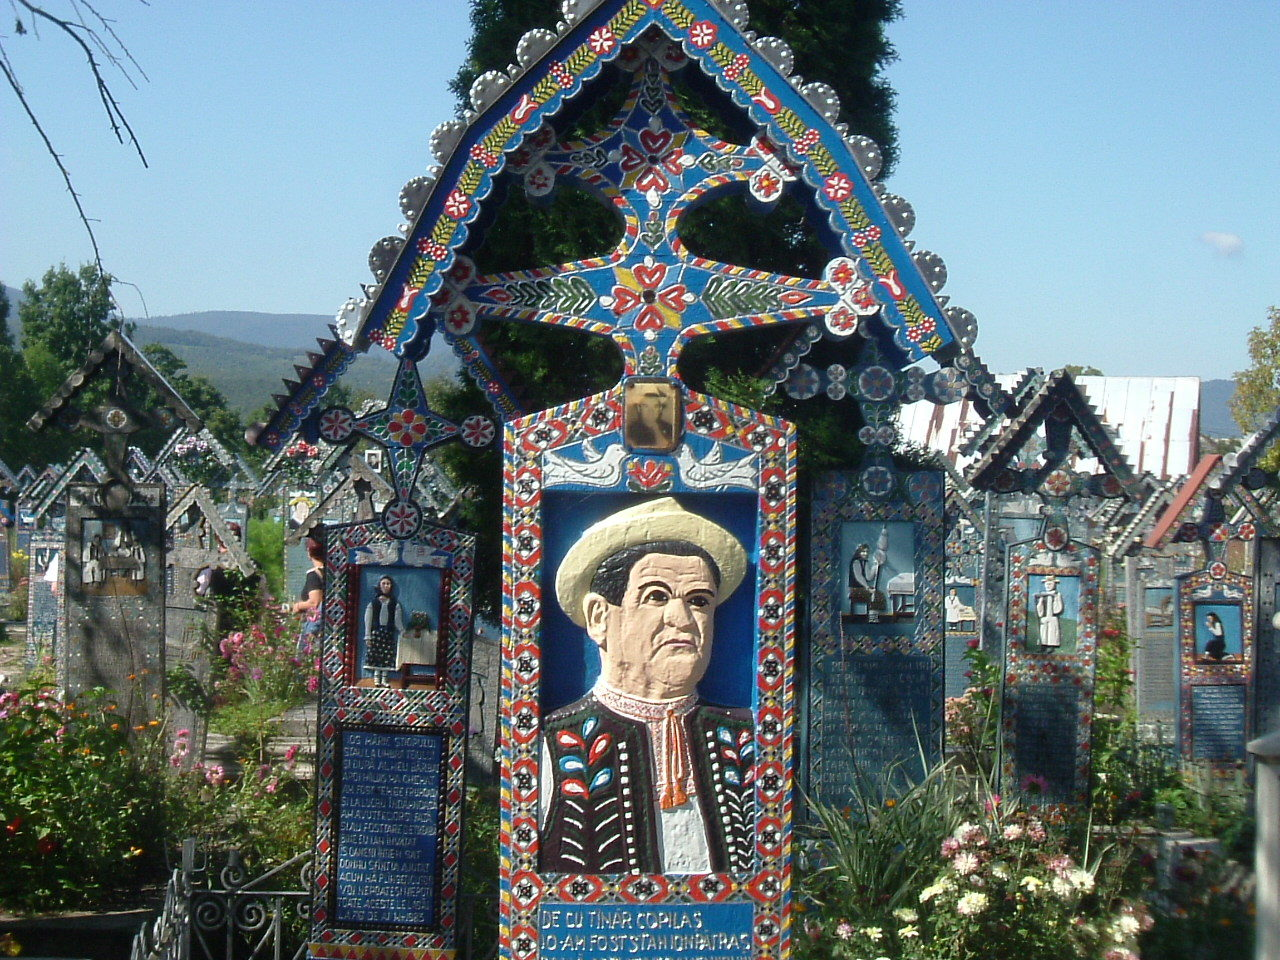 Merry Cemetery seen in Dracula tours from Budapest or Bucharest